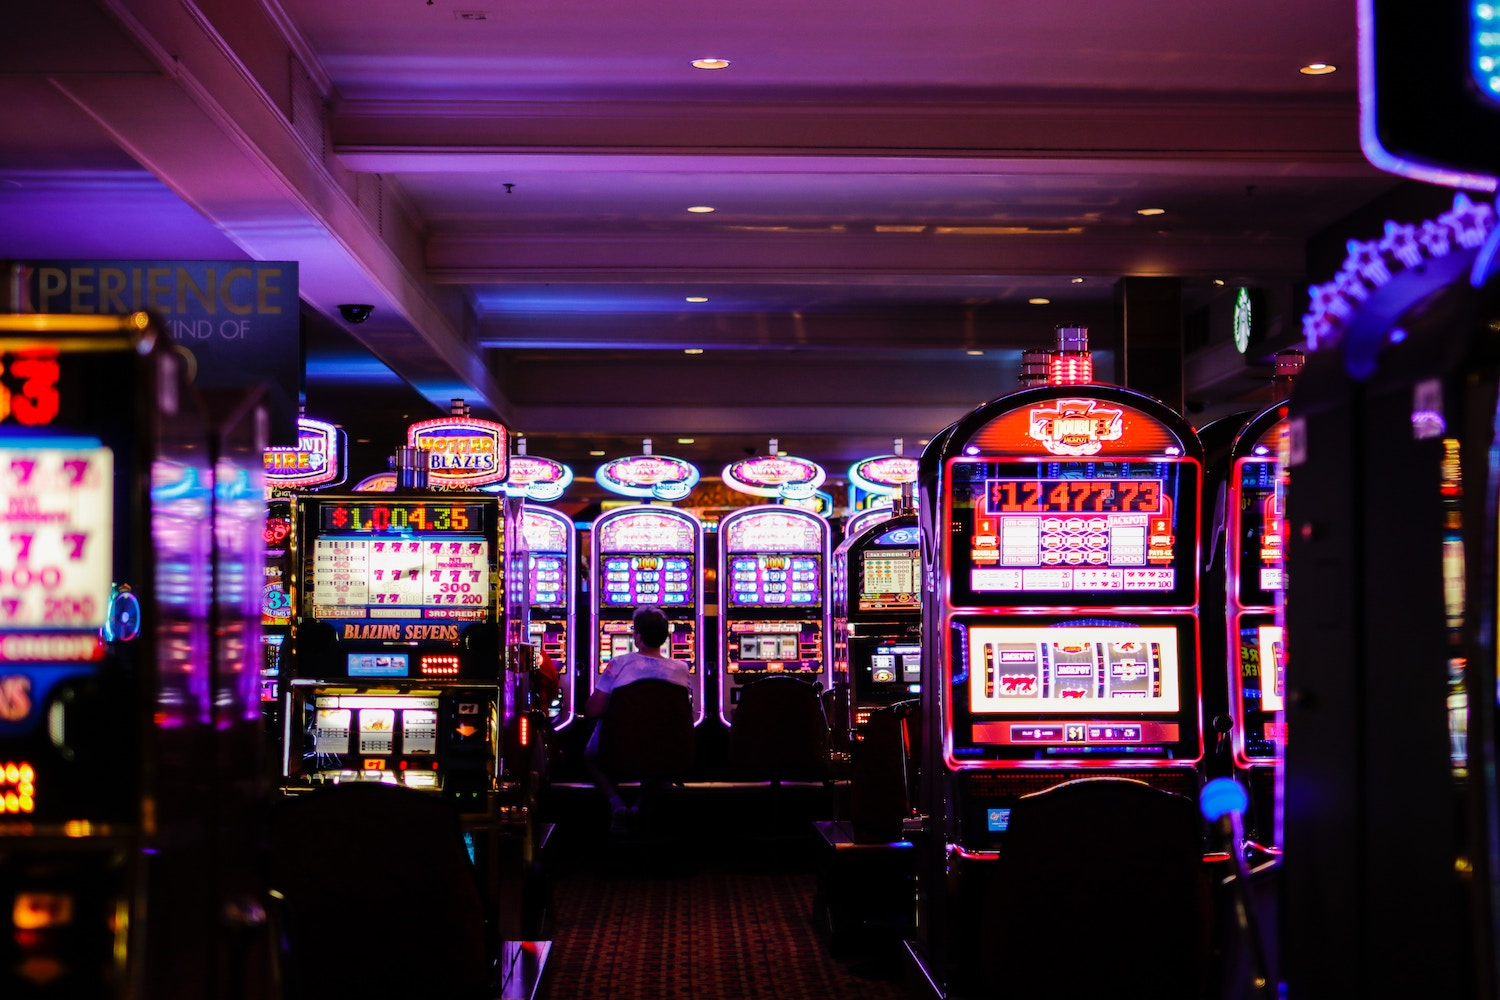 Online casino market growth in 2020 and beyond